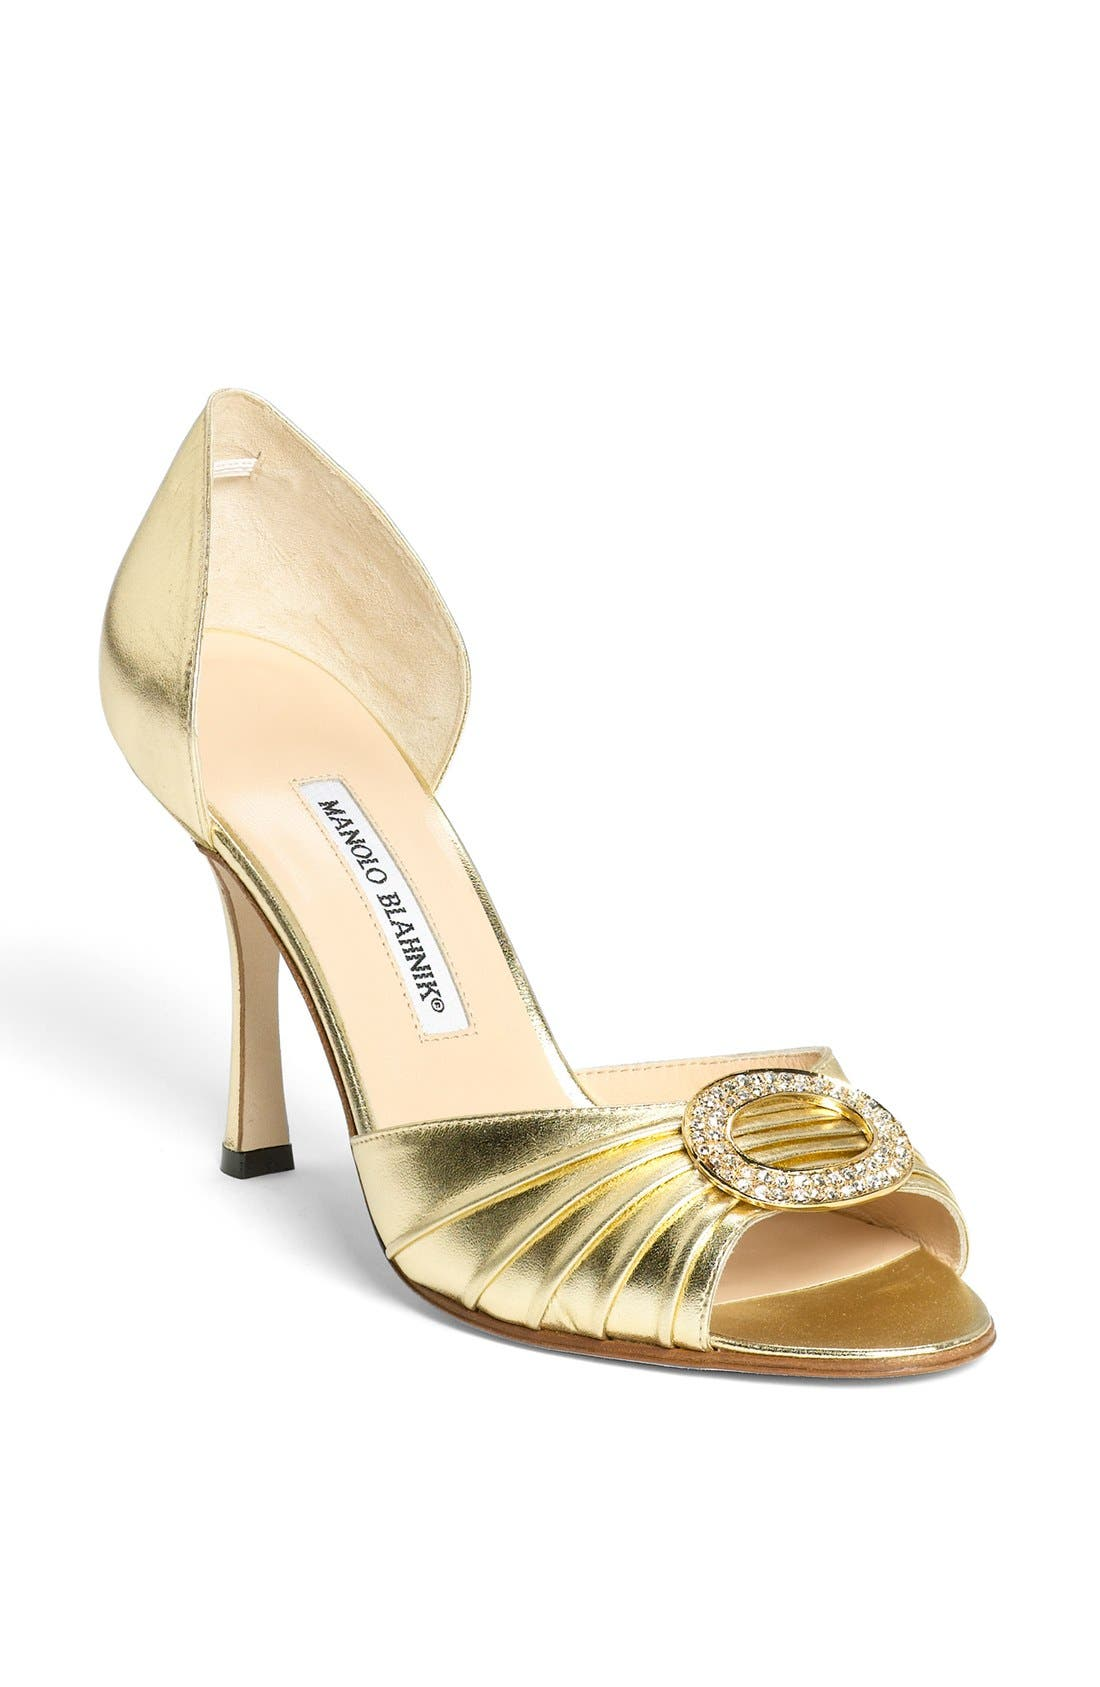 Alternate Image 1 Selected - Manolo Blahnik 'Sedaraby' Open Toe d'Orsay Pump (Women)